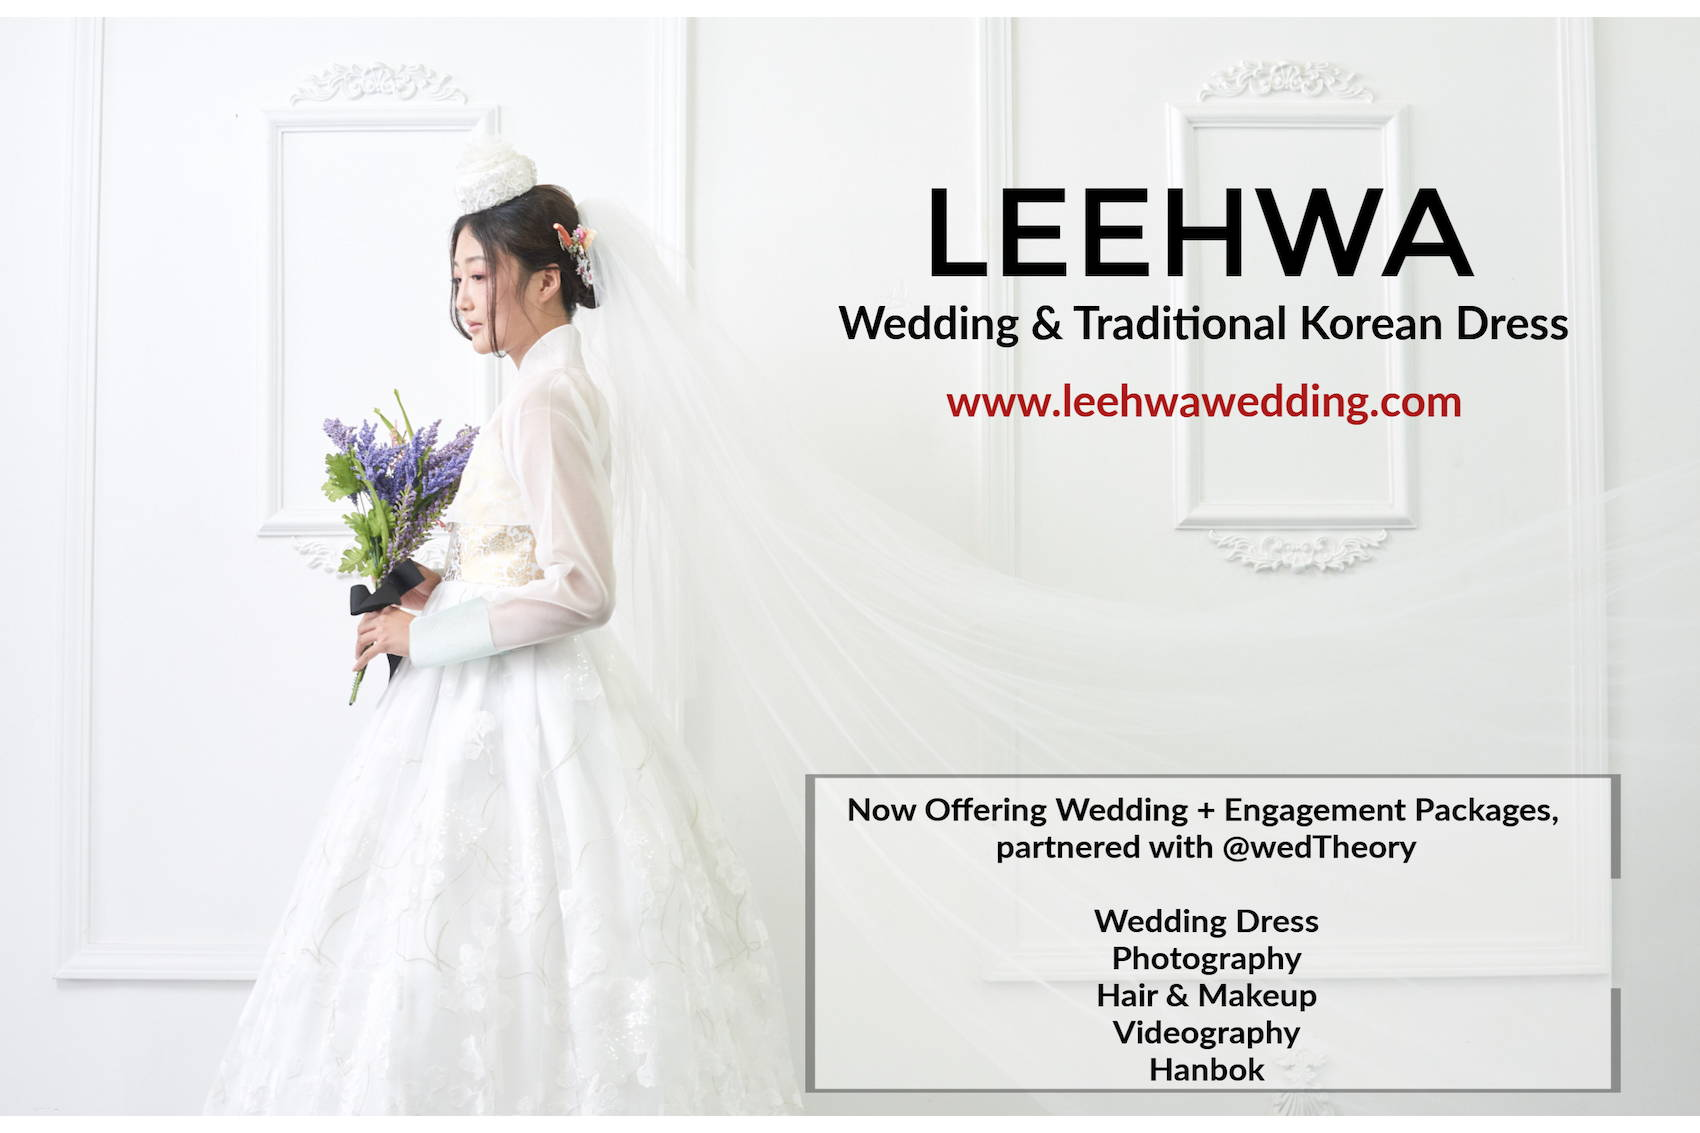 LEEHWA WEDDING PHOTO PACKAGE LOS ANGELES